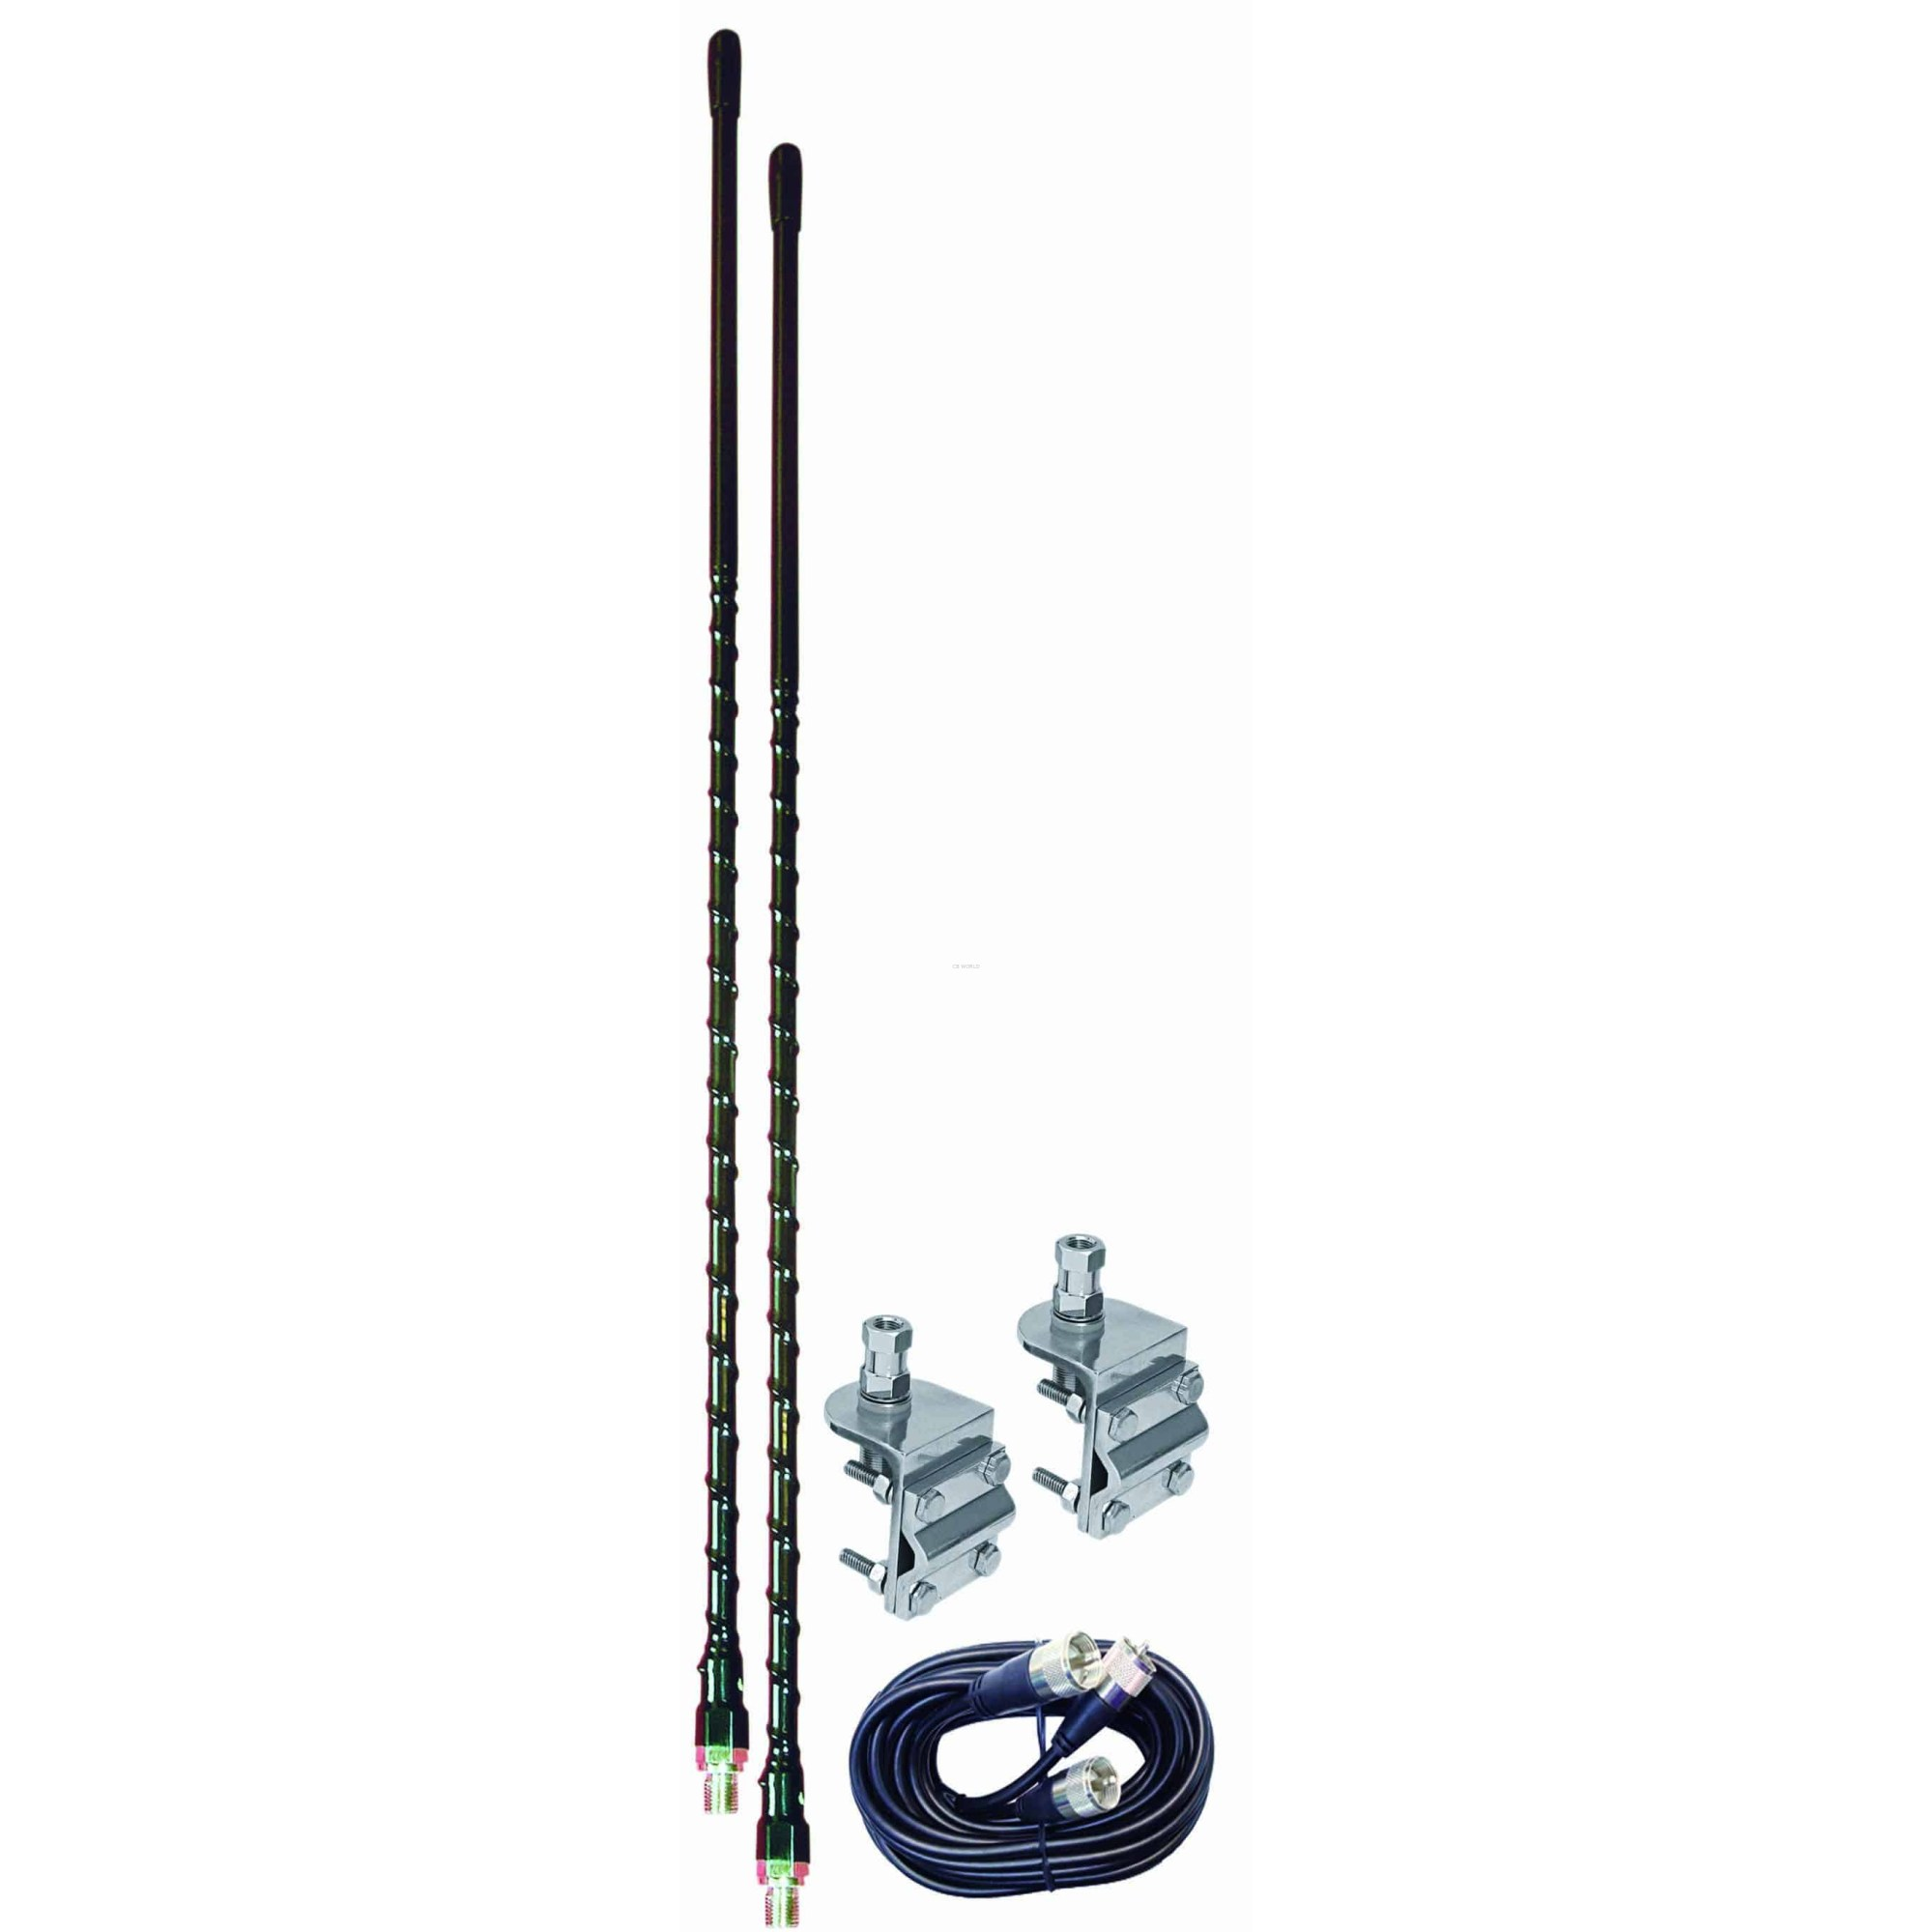 hight resolution of aumm23 b 3 black dual cb antenna kit